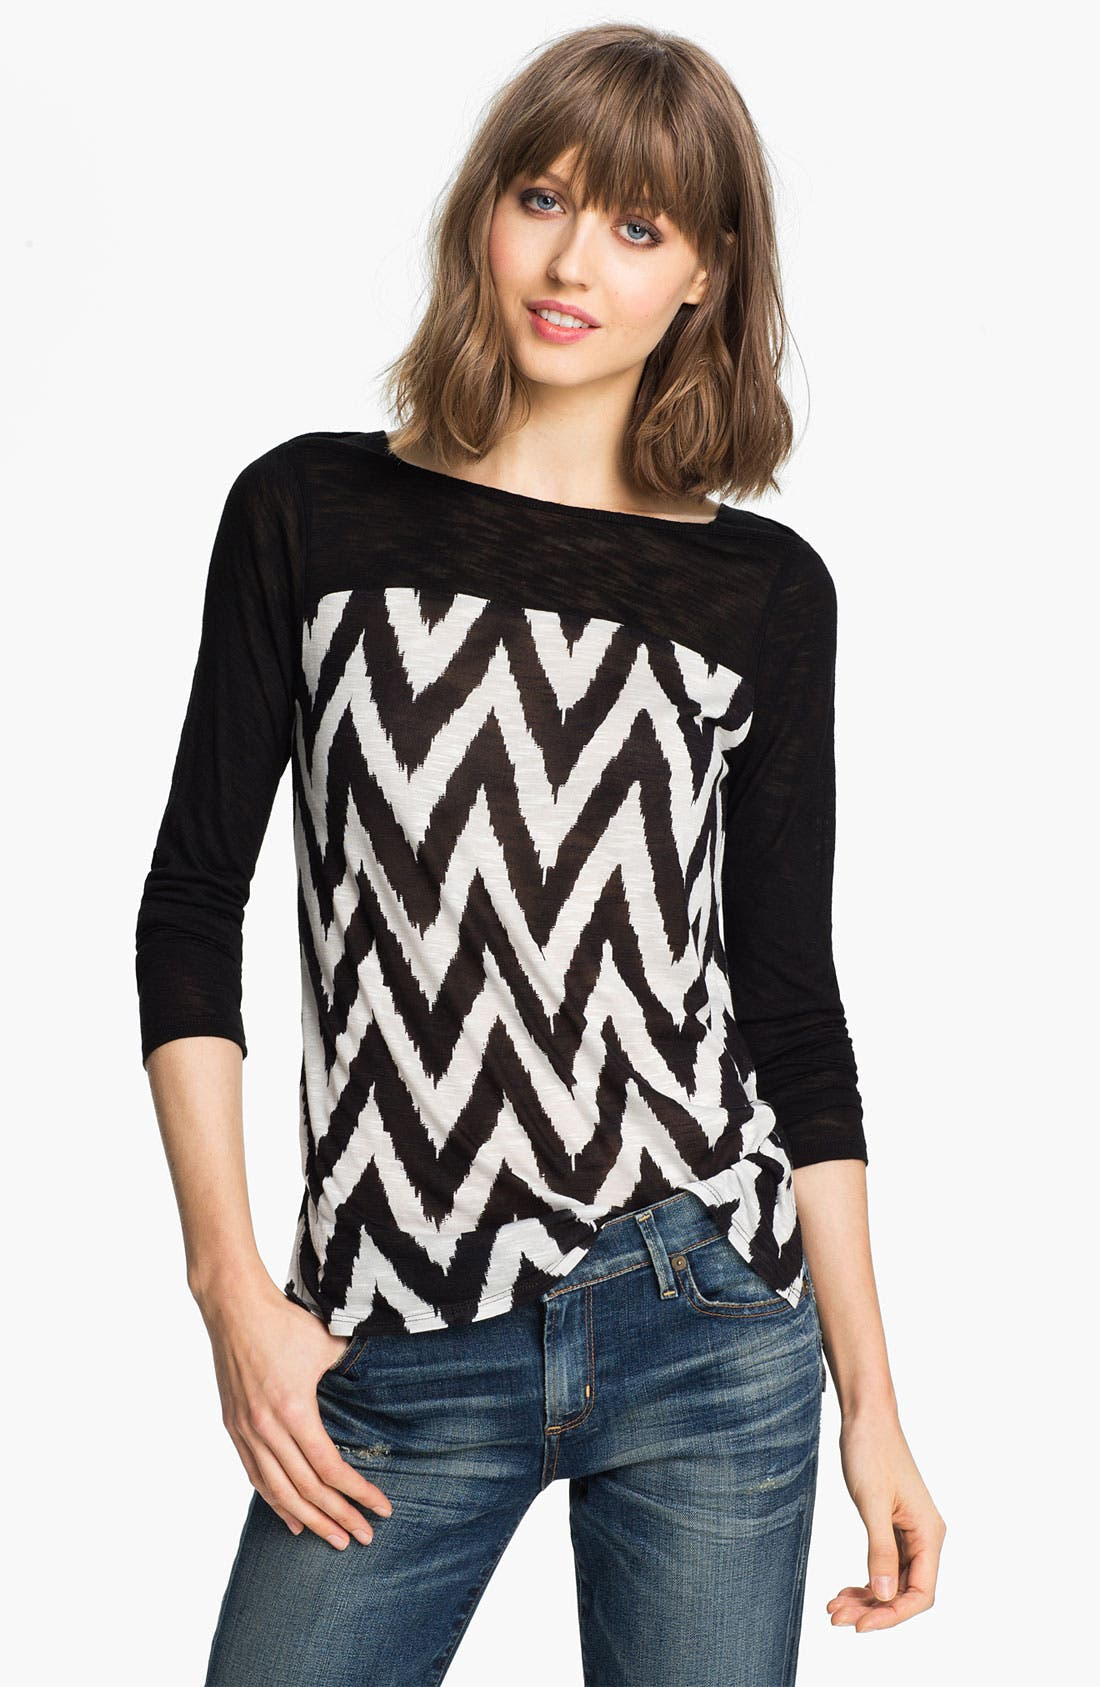 Alternate Image 1 Selected - Ella Moss 'Mazzy' Zigzag Print Top